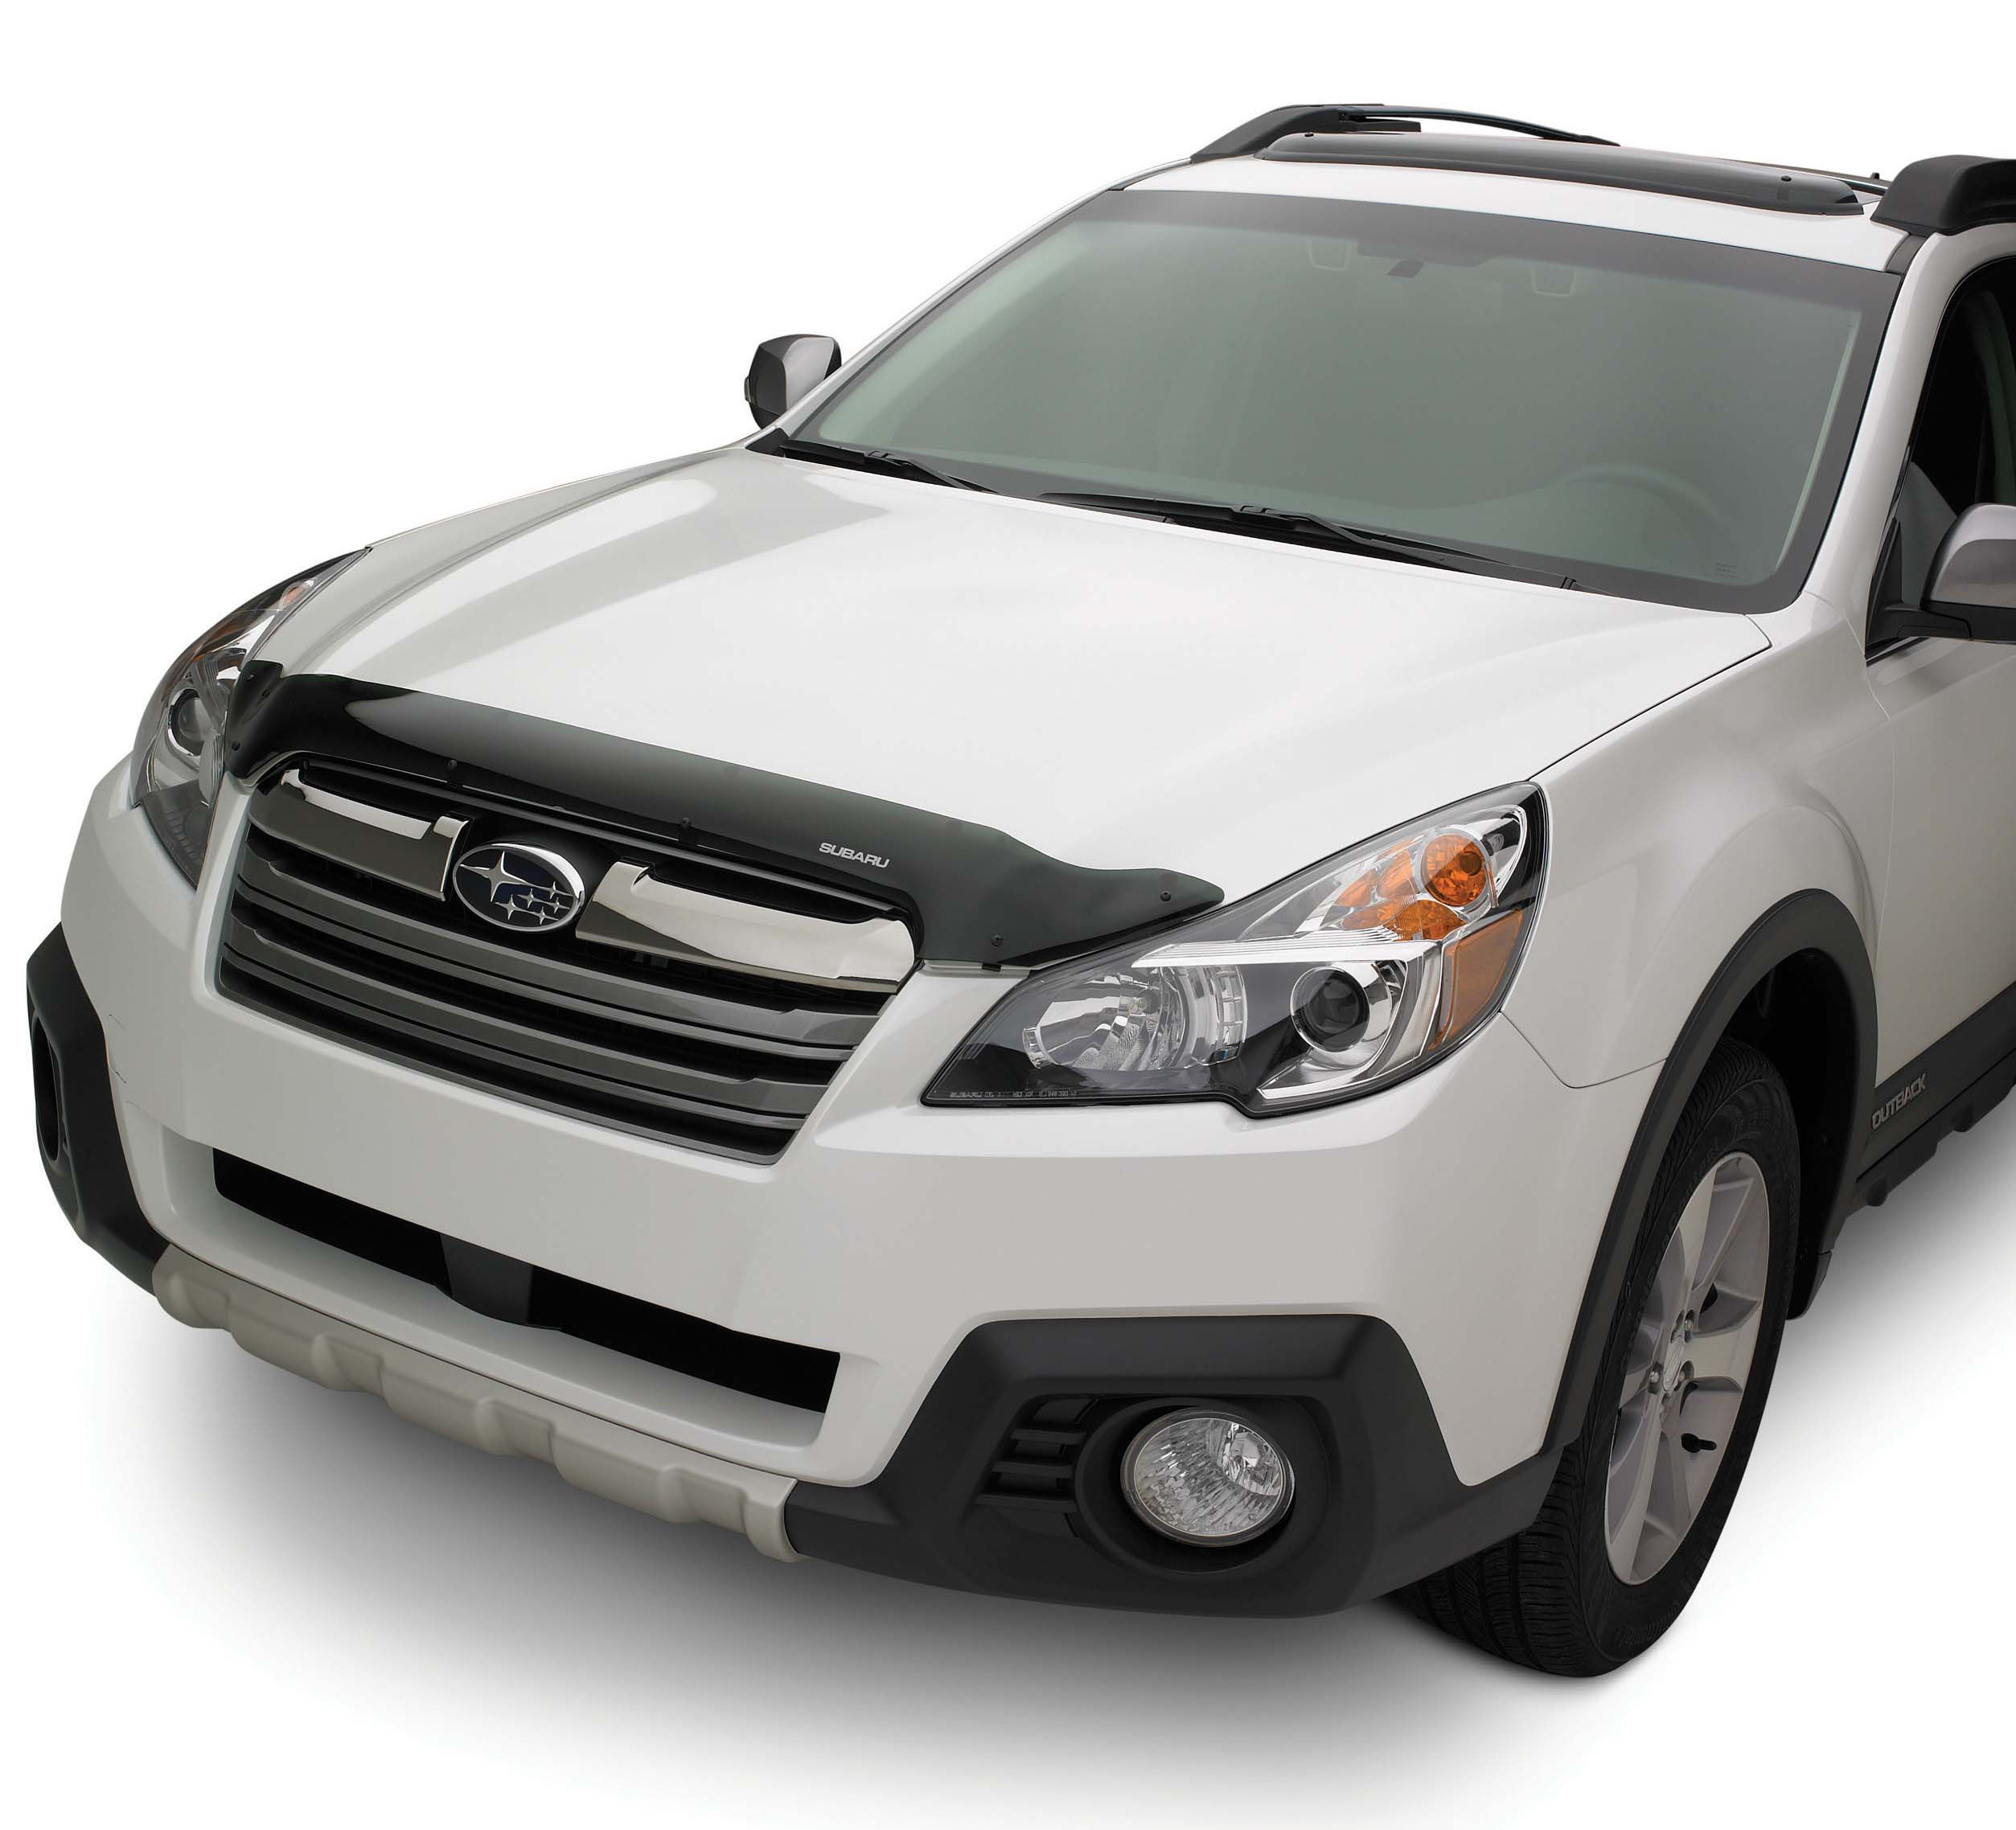 Outback Front Bumper : Subaru outback front bumper underguard style